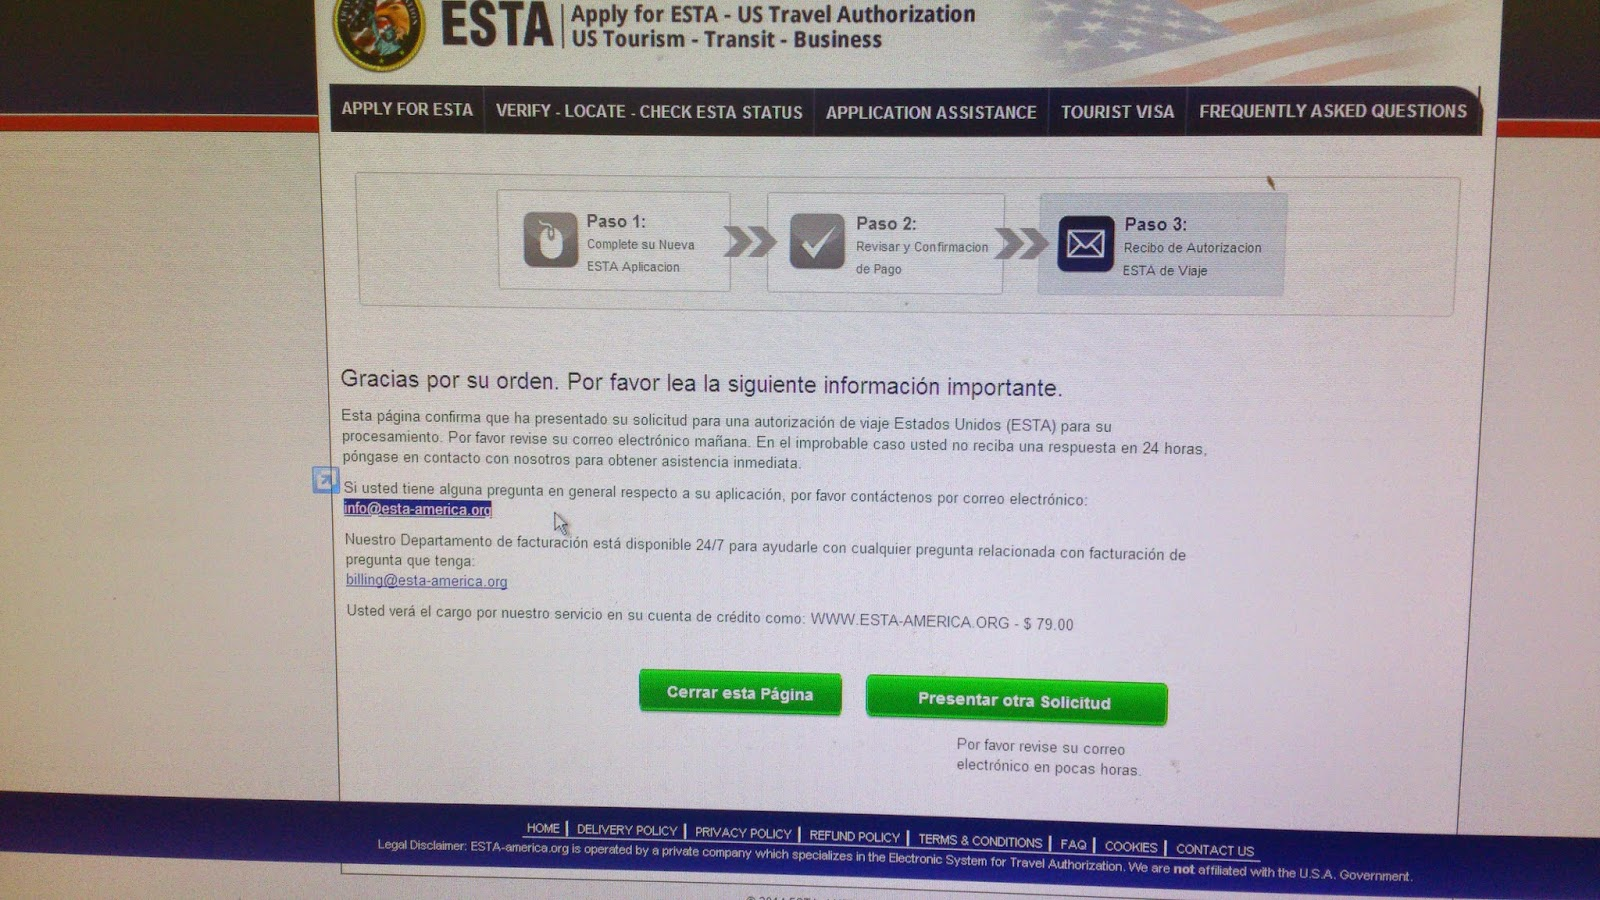 ESTA - Welcome to the Electronic System for Travel Authorization